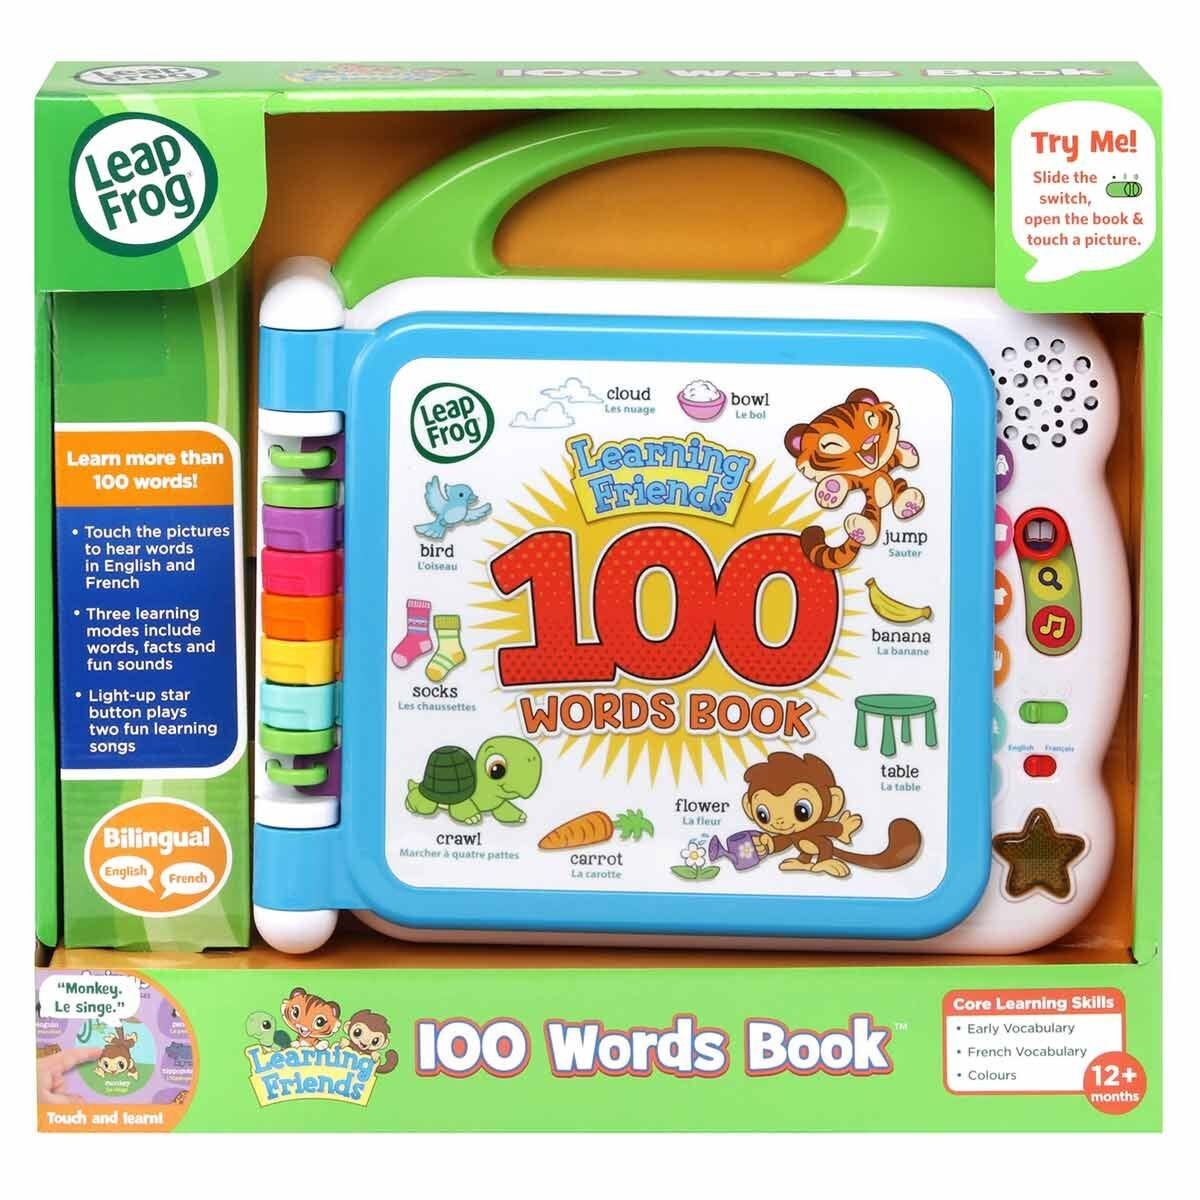 Leapfrog Learning Friends 100 Words Learning Book